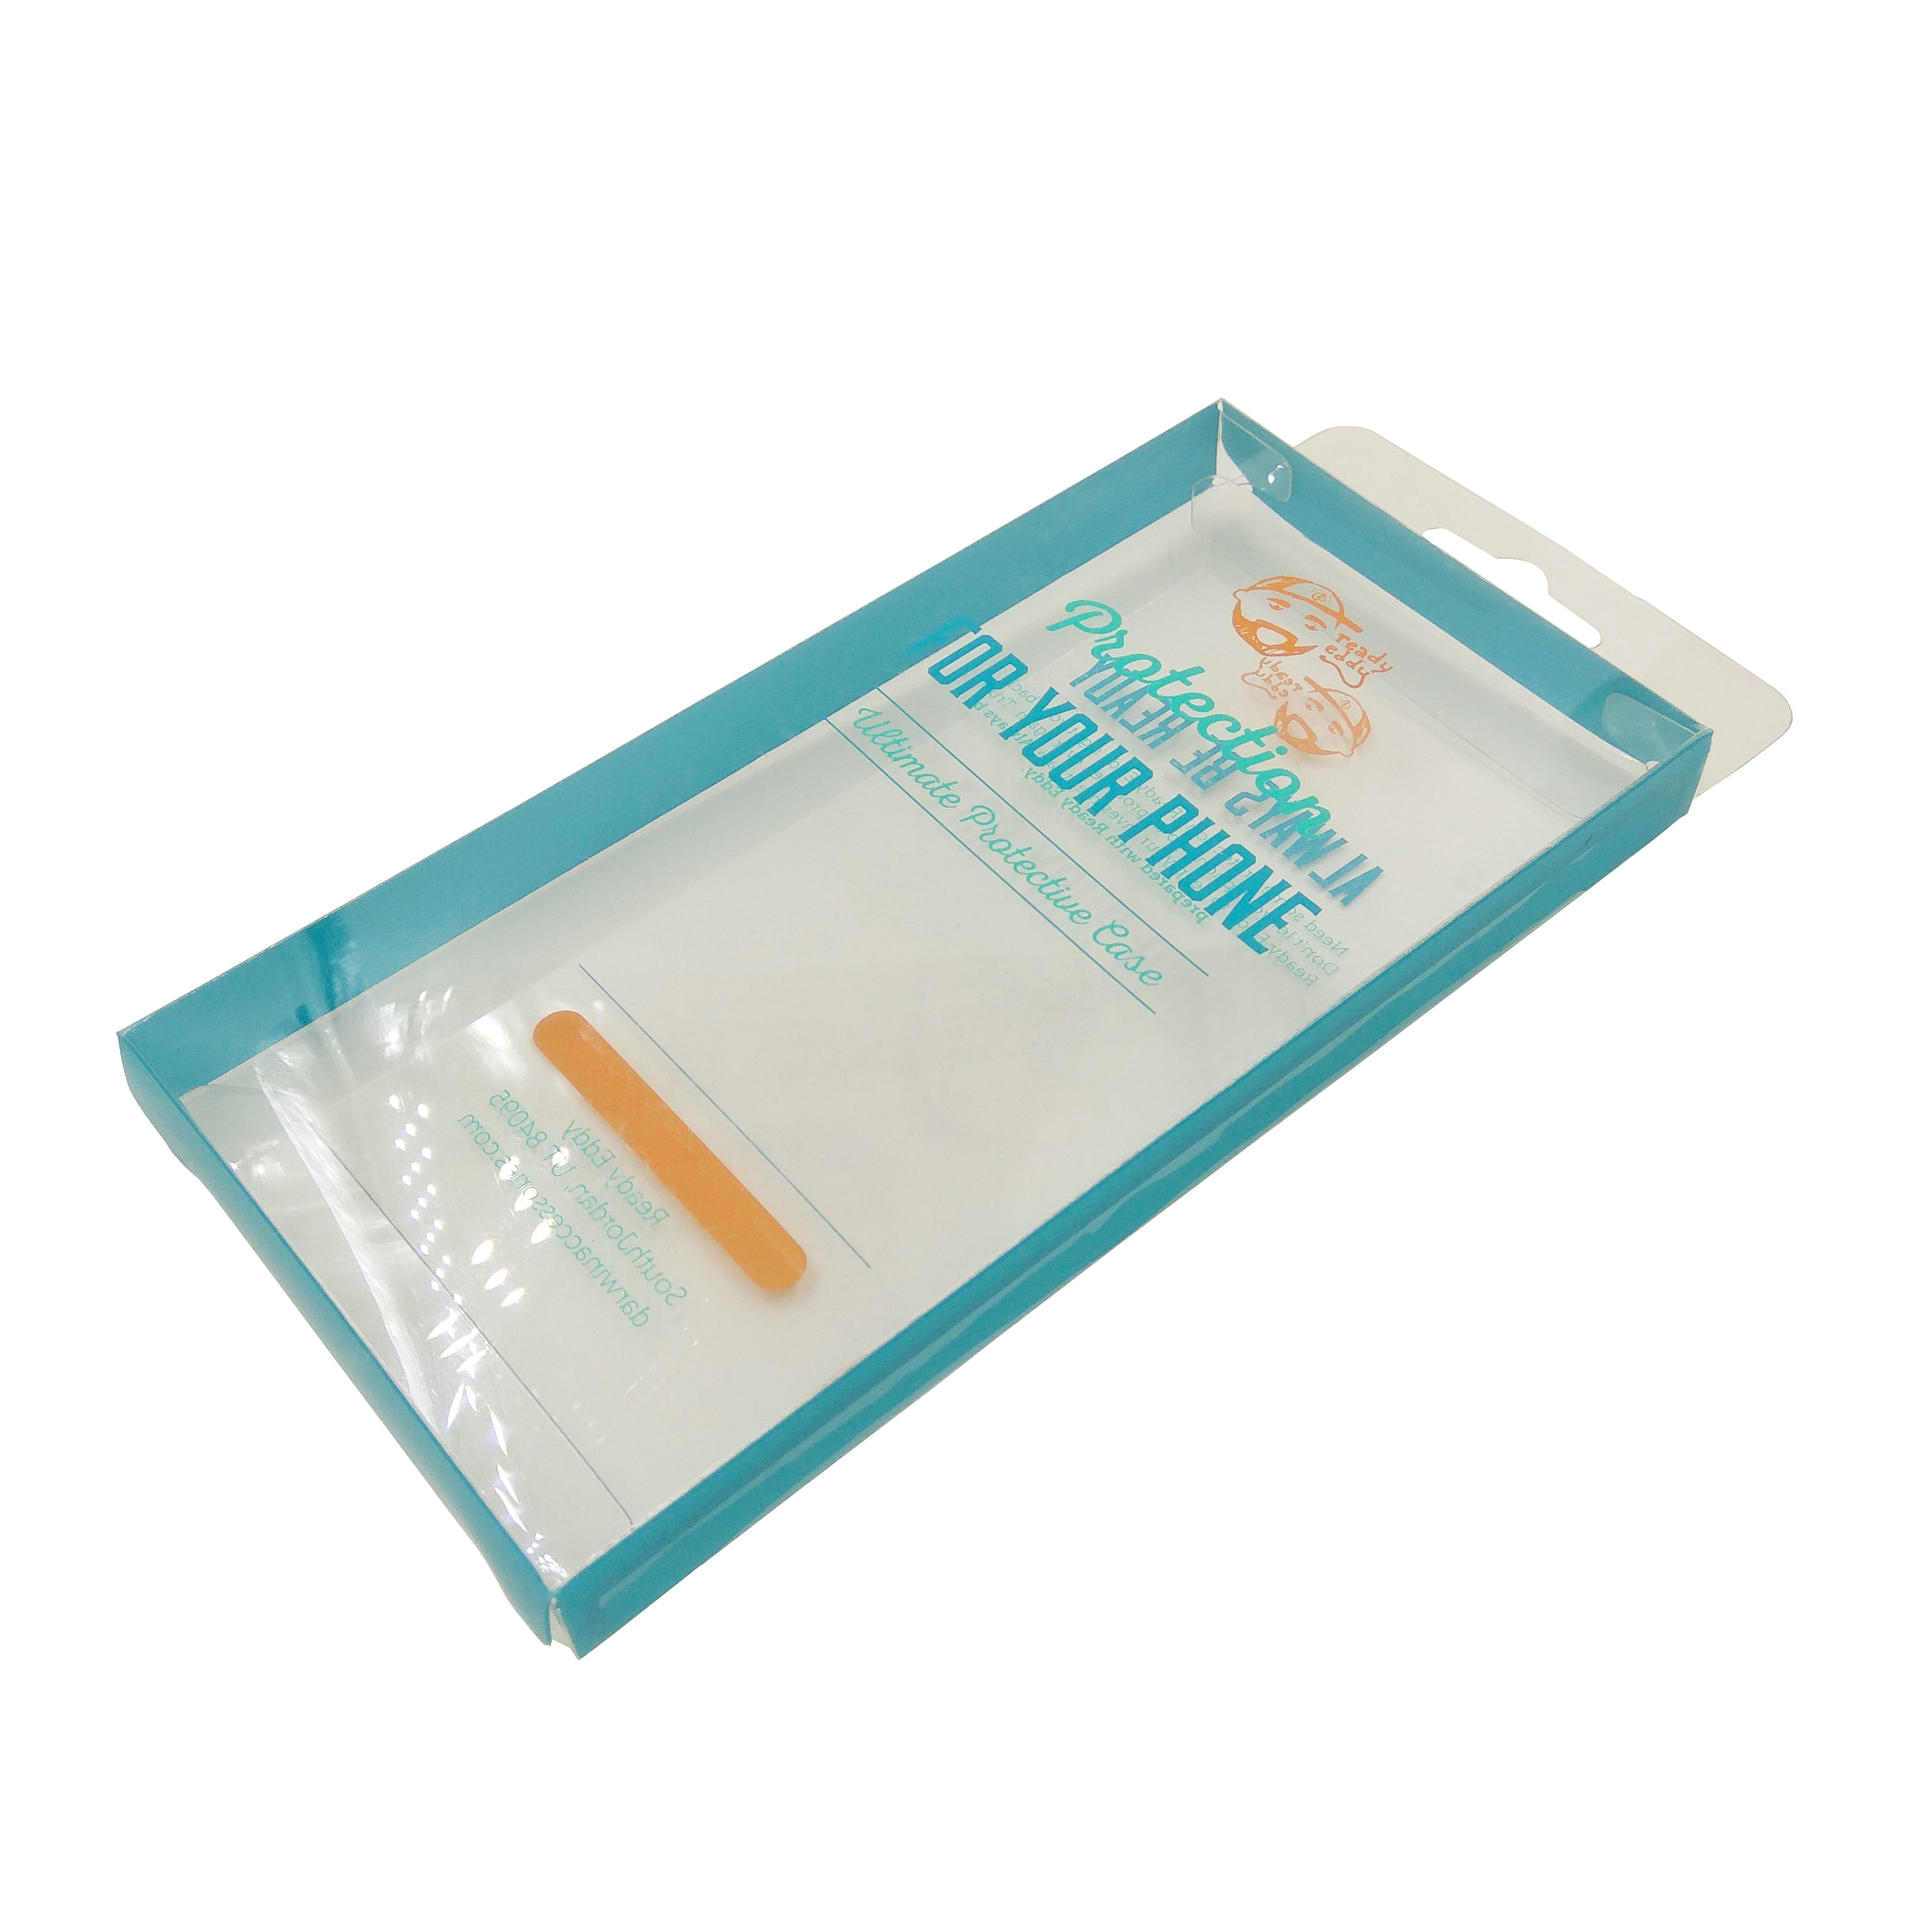 Clear Plastic Packaging Box for Cell Phone Protective Case W/ Custom Logo Printed